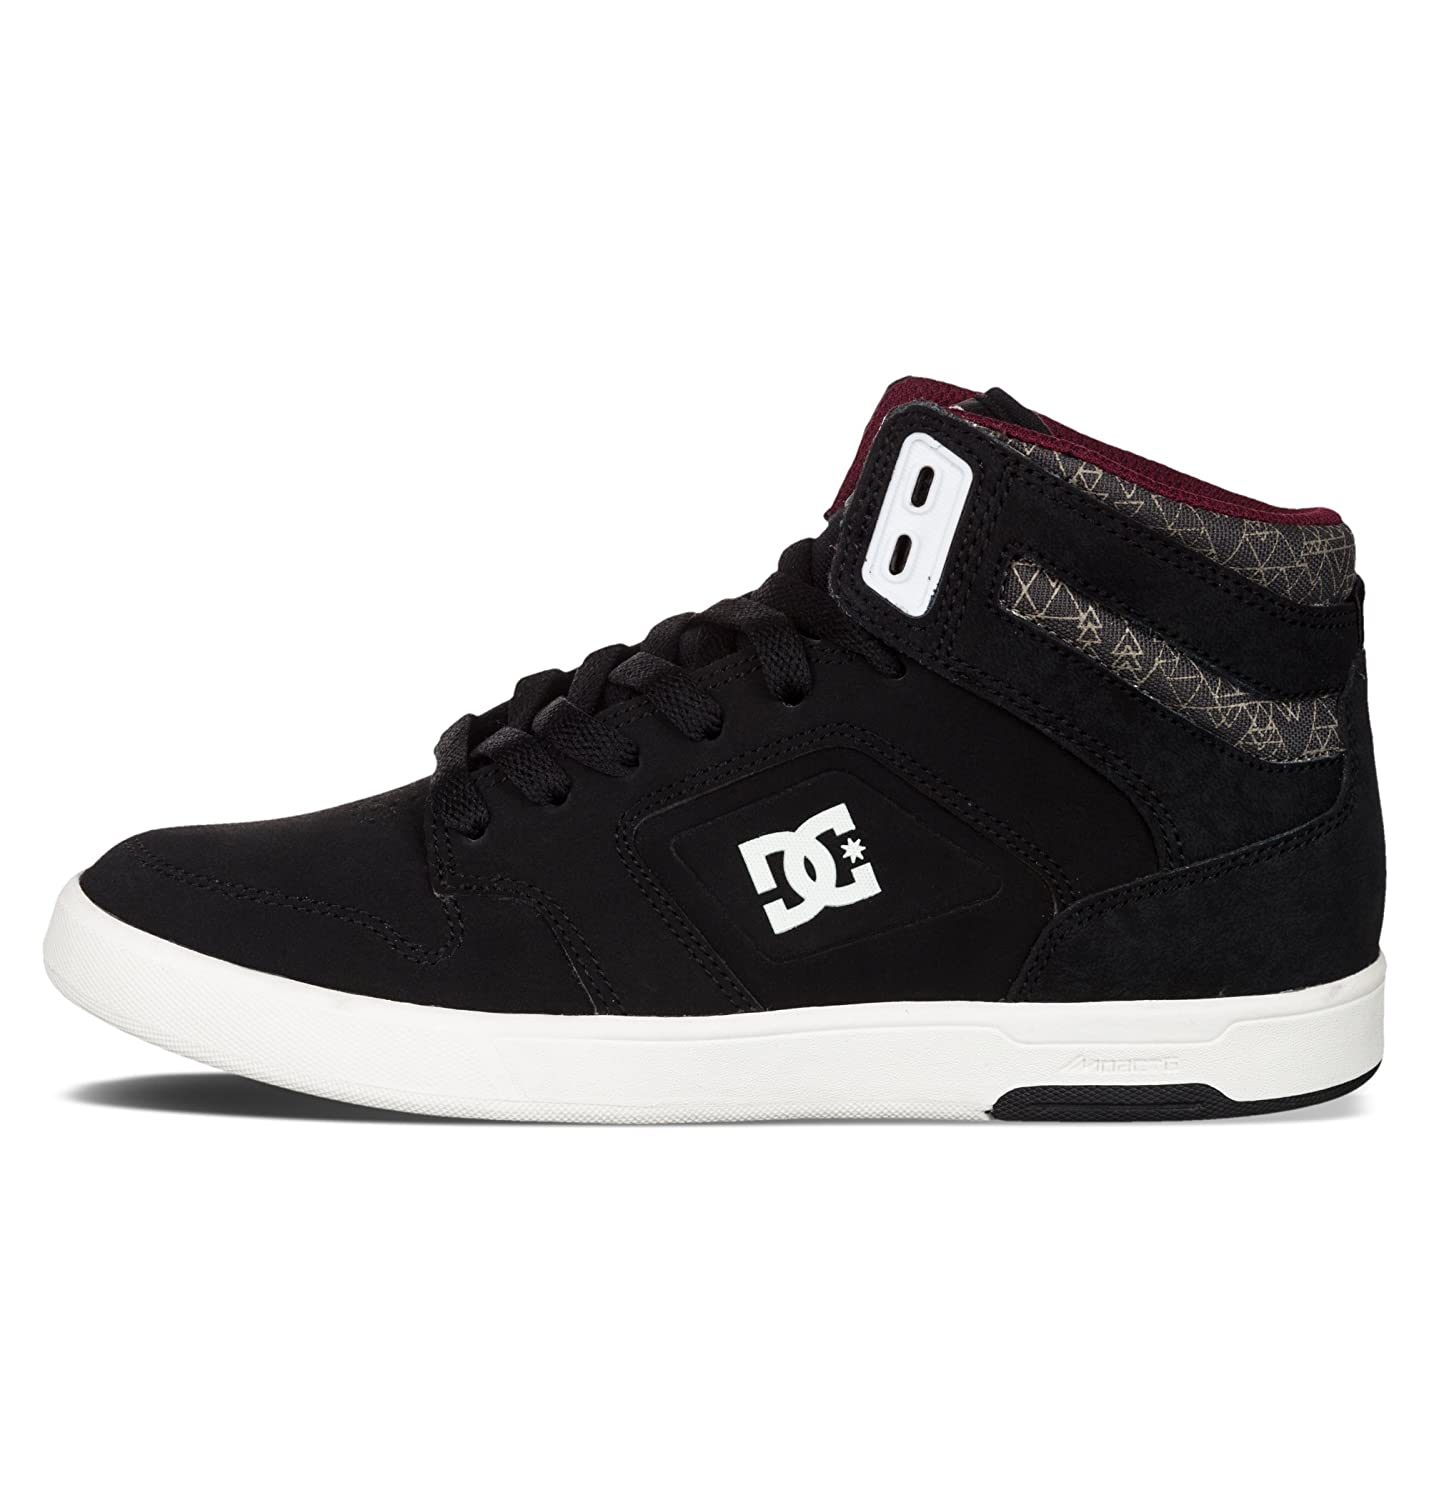 9c4aadf9143364 DC Nyjah High, Baskets mode femme - Noir (Black Anthracite-Bka), 42 EU   Amazon.fr  Chaussures et Sacs